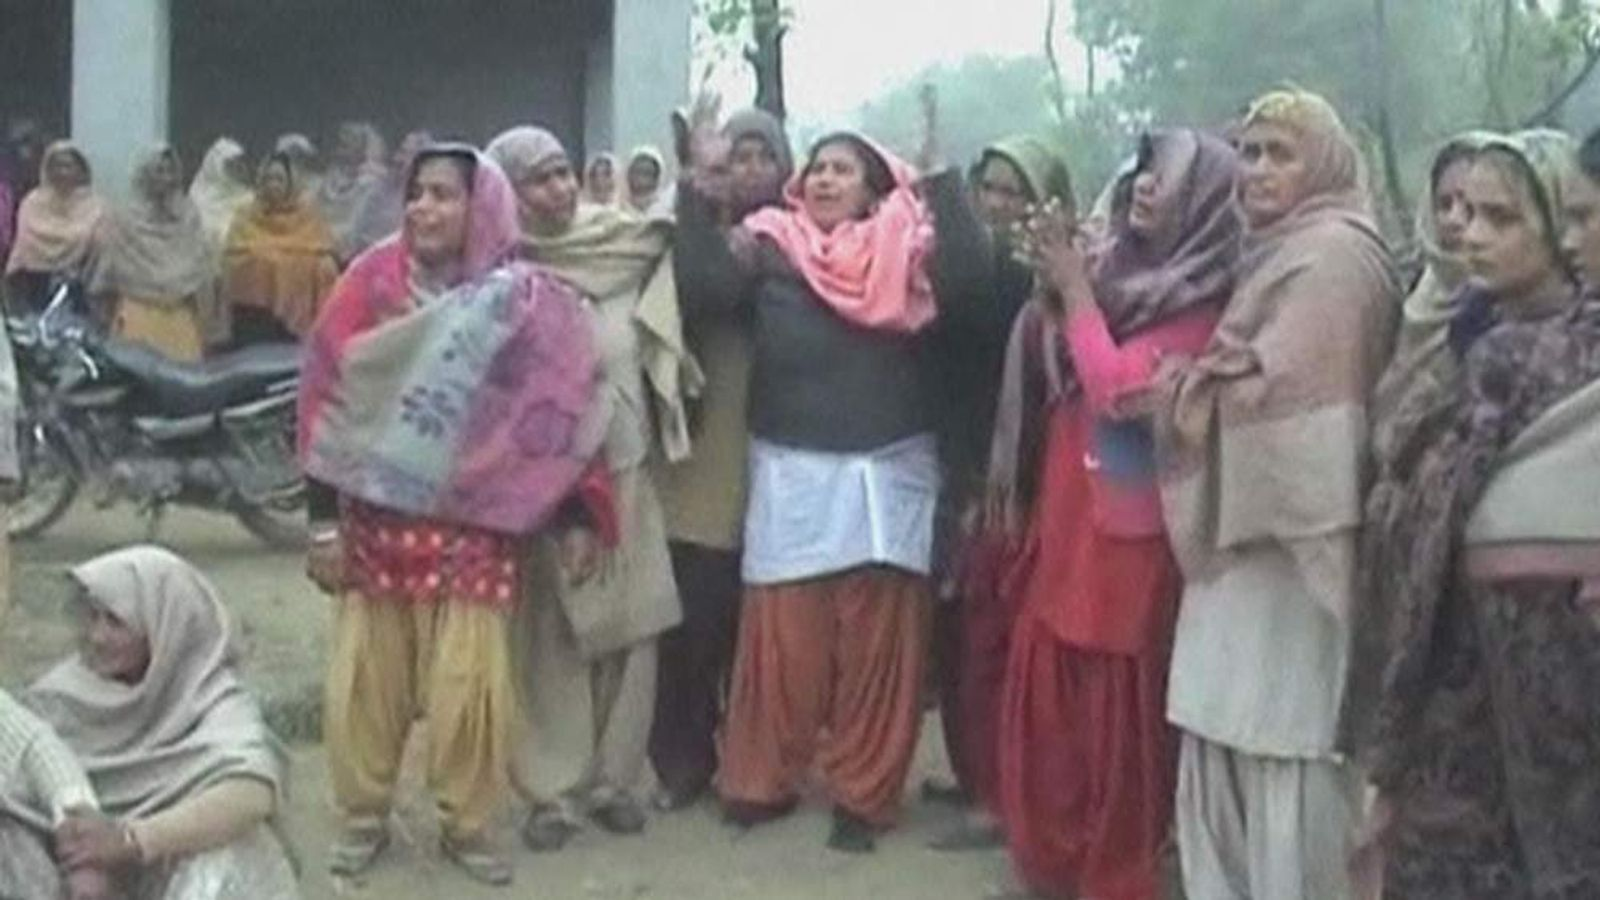 Women cry after rape victim kills herself in India